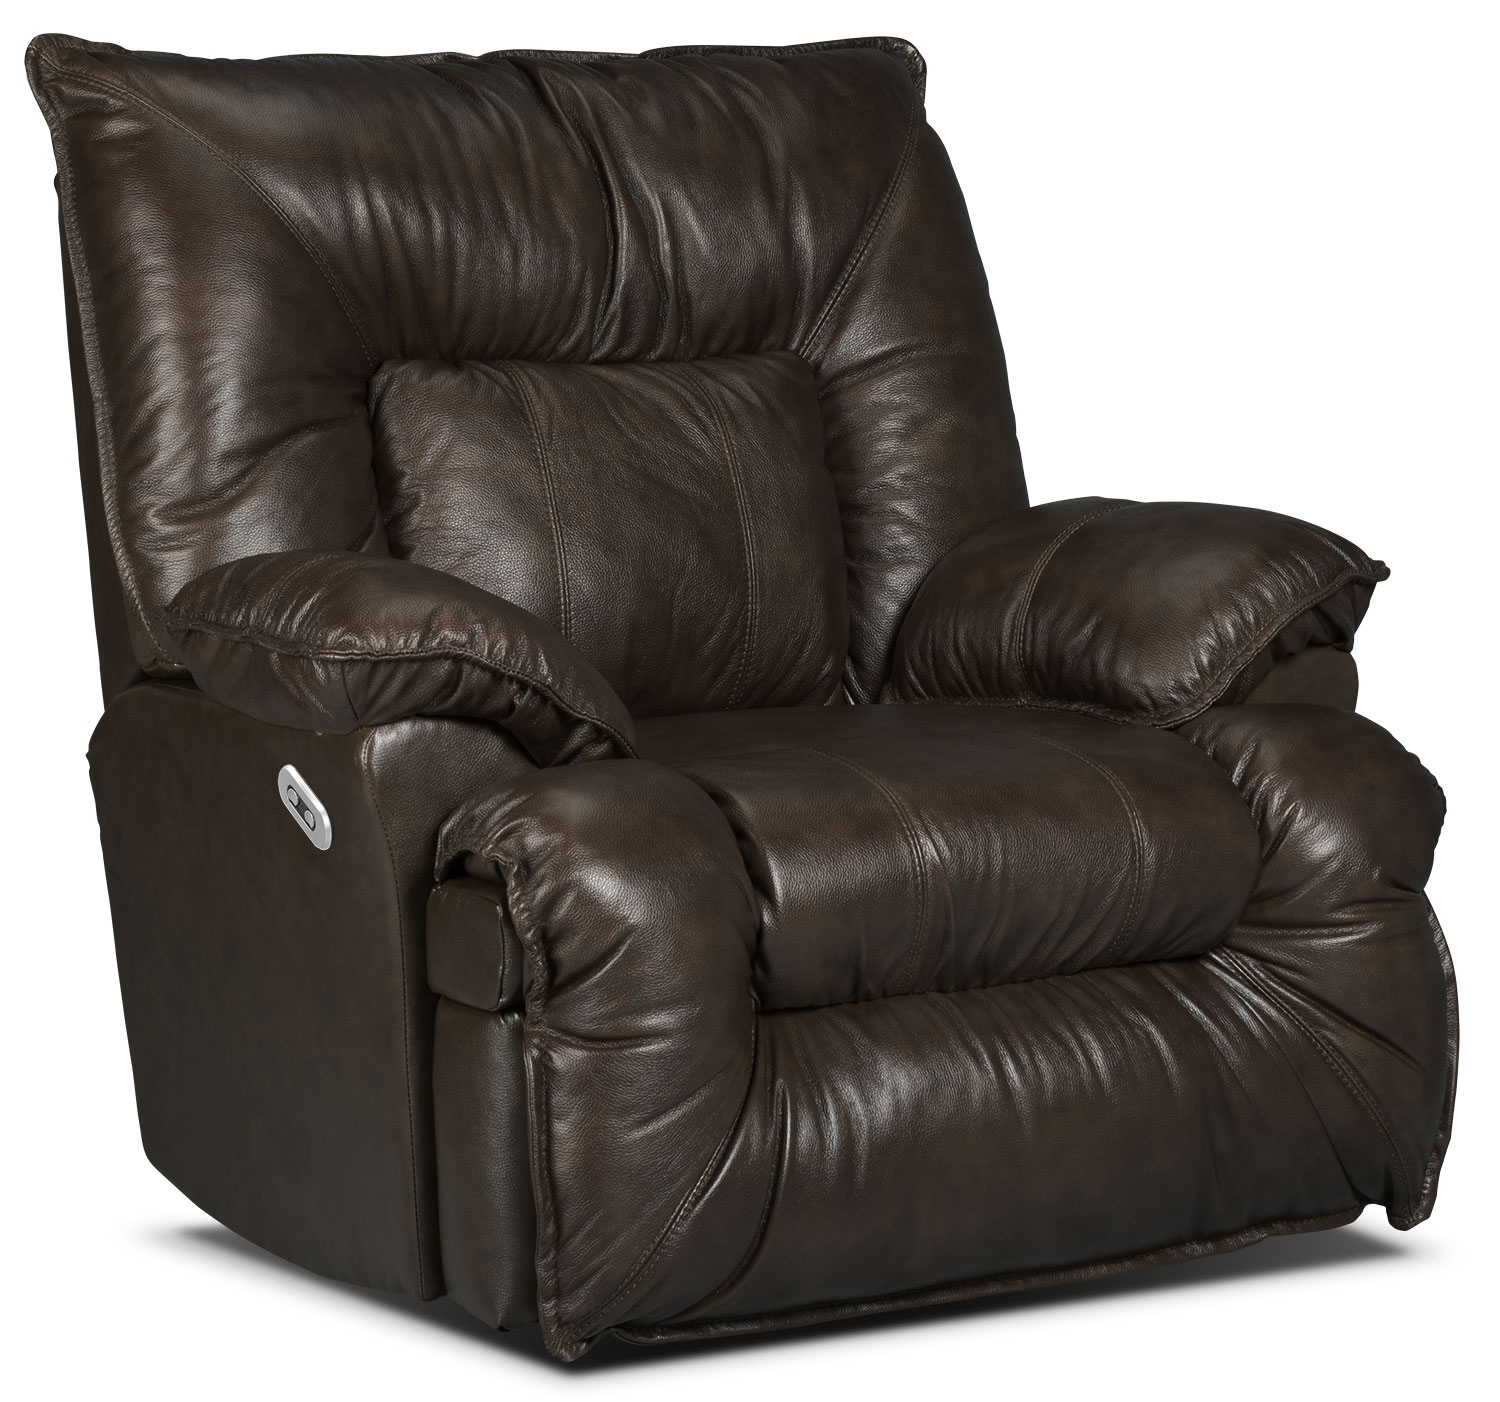 Living Room Furniture - Designed2B Recliner 7726 Leather-Look Fabric Power Lay-Flat Recline Chair - Chocolate